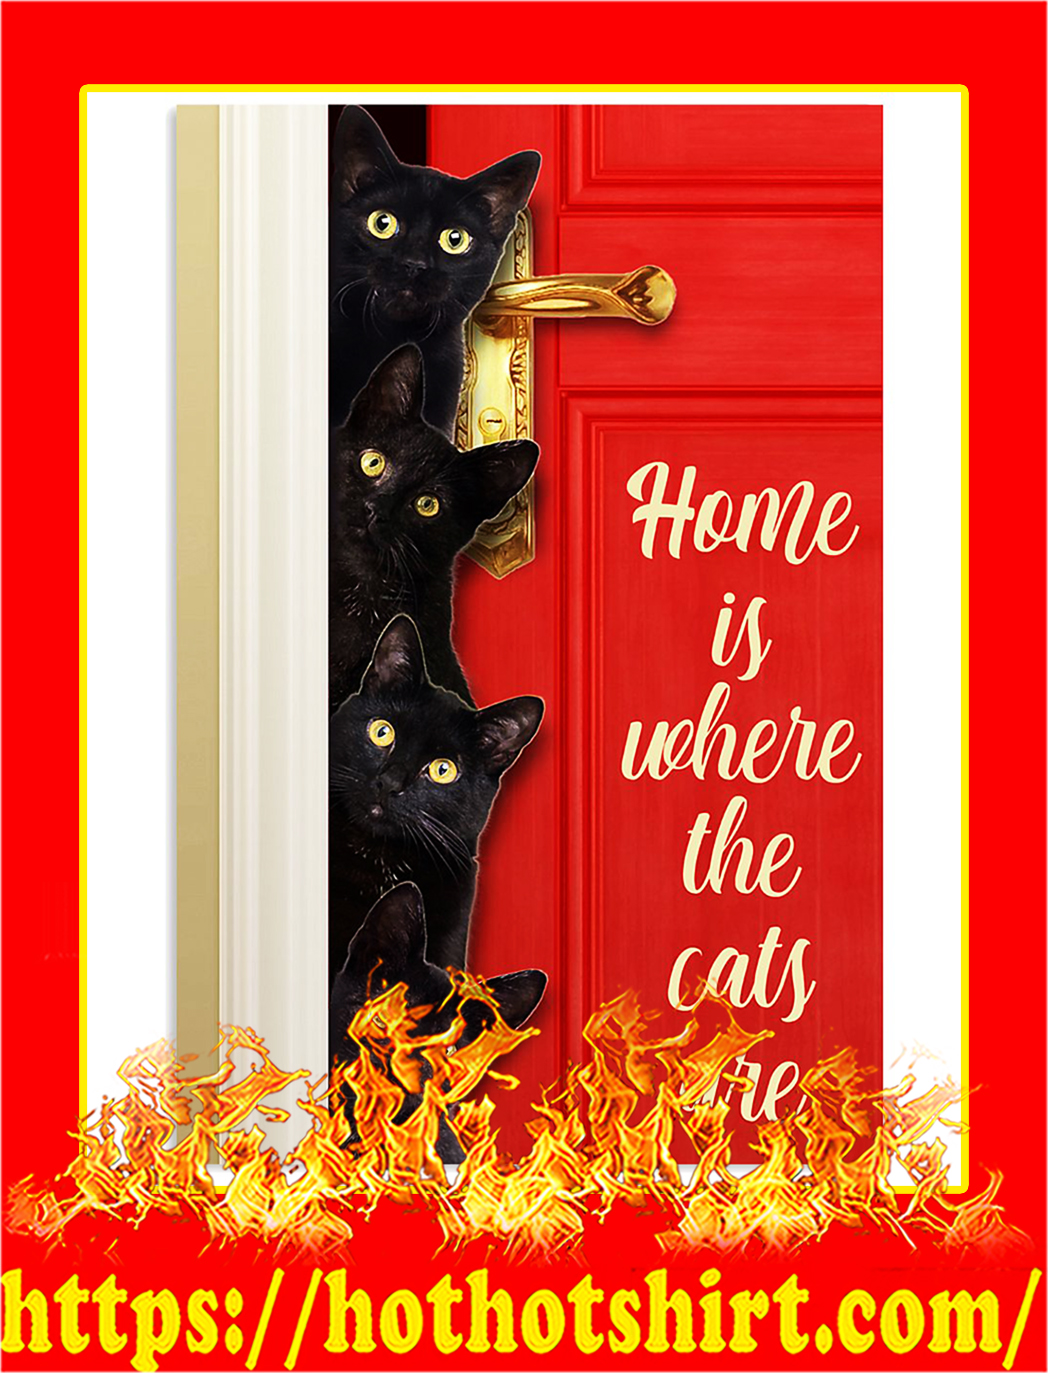 Home is where the cats are poster - A1